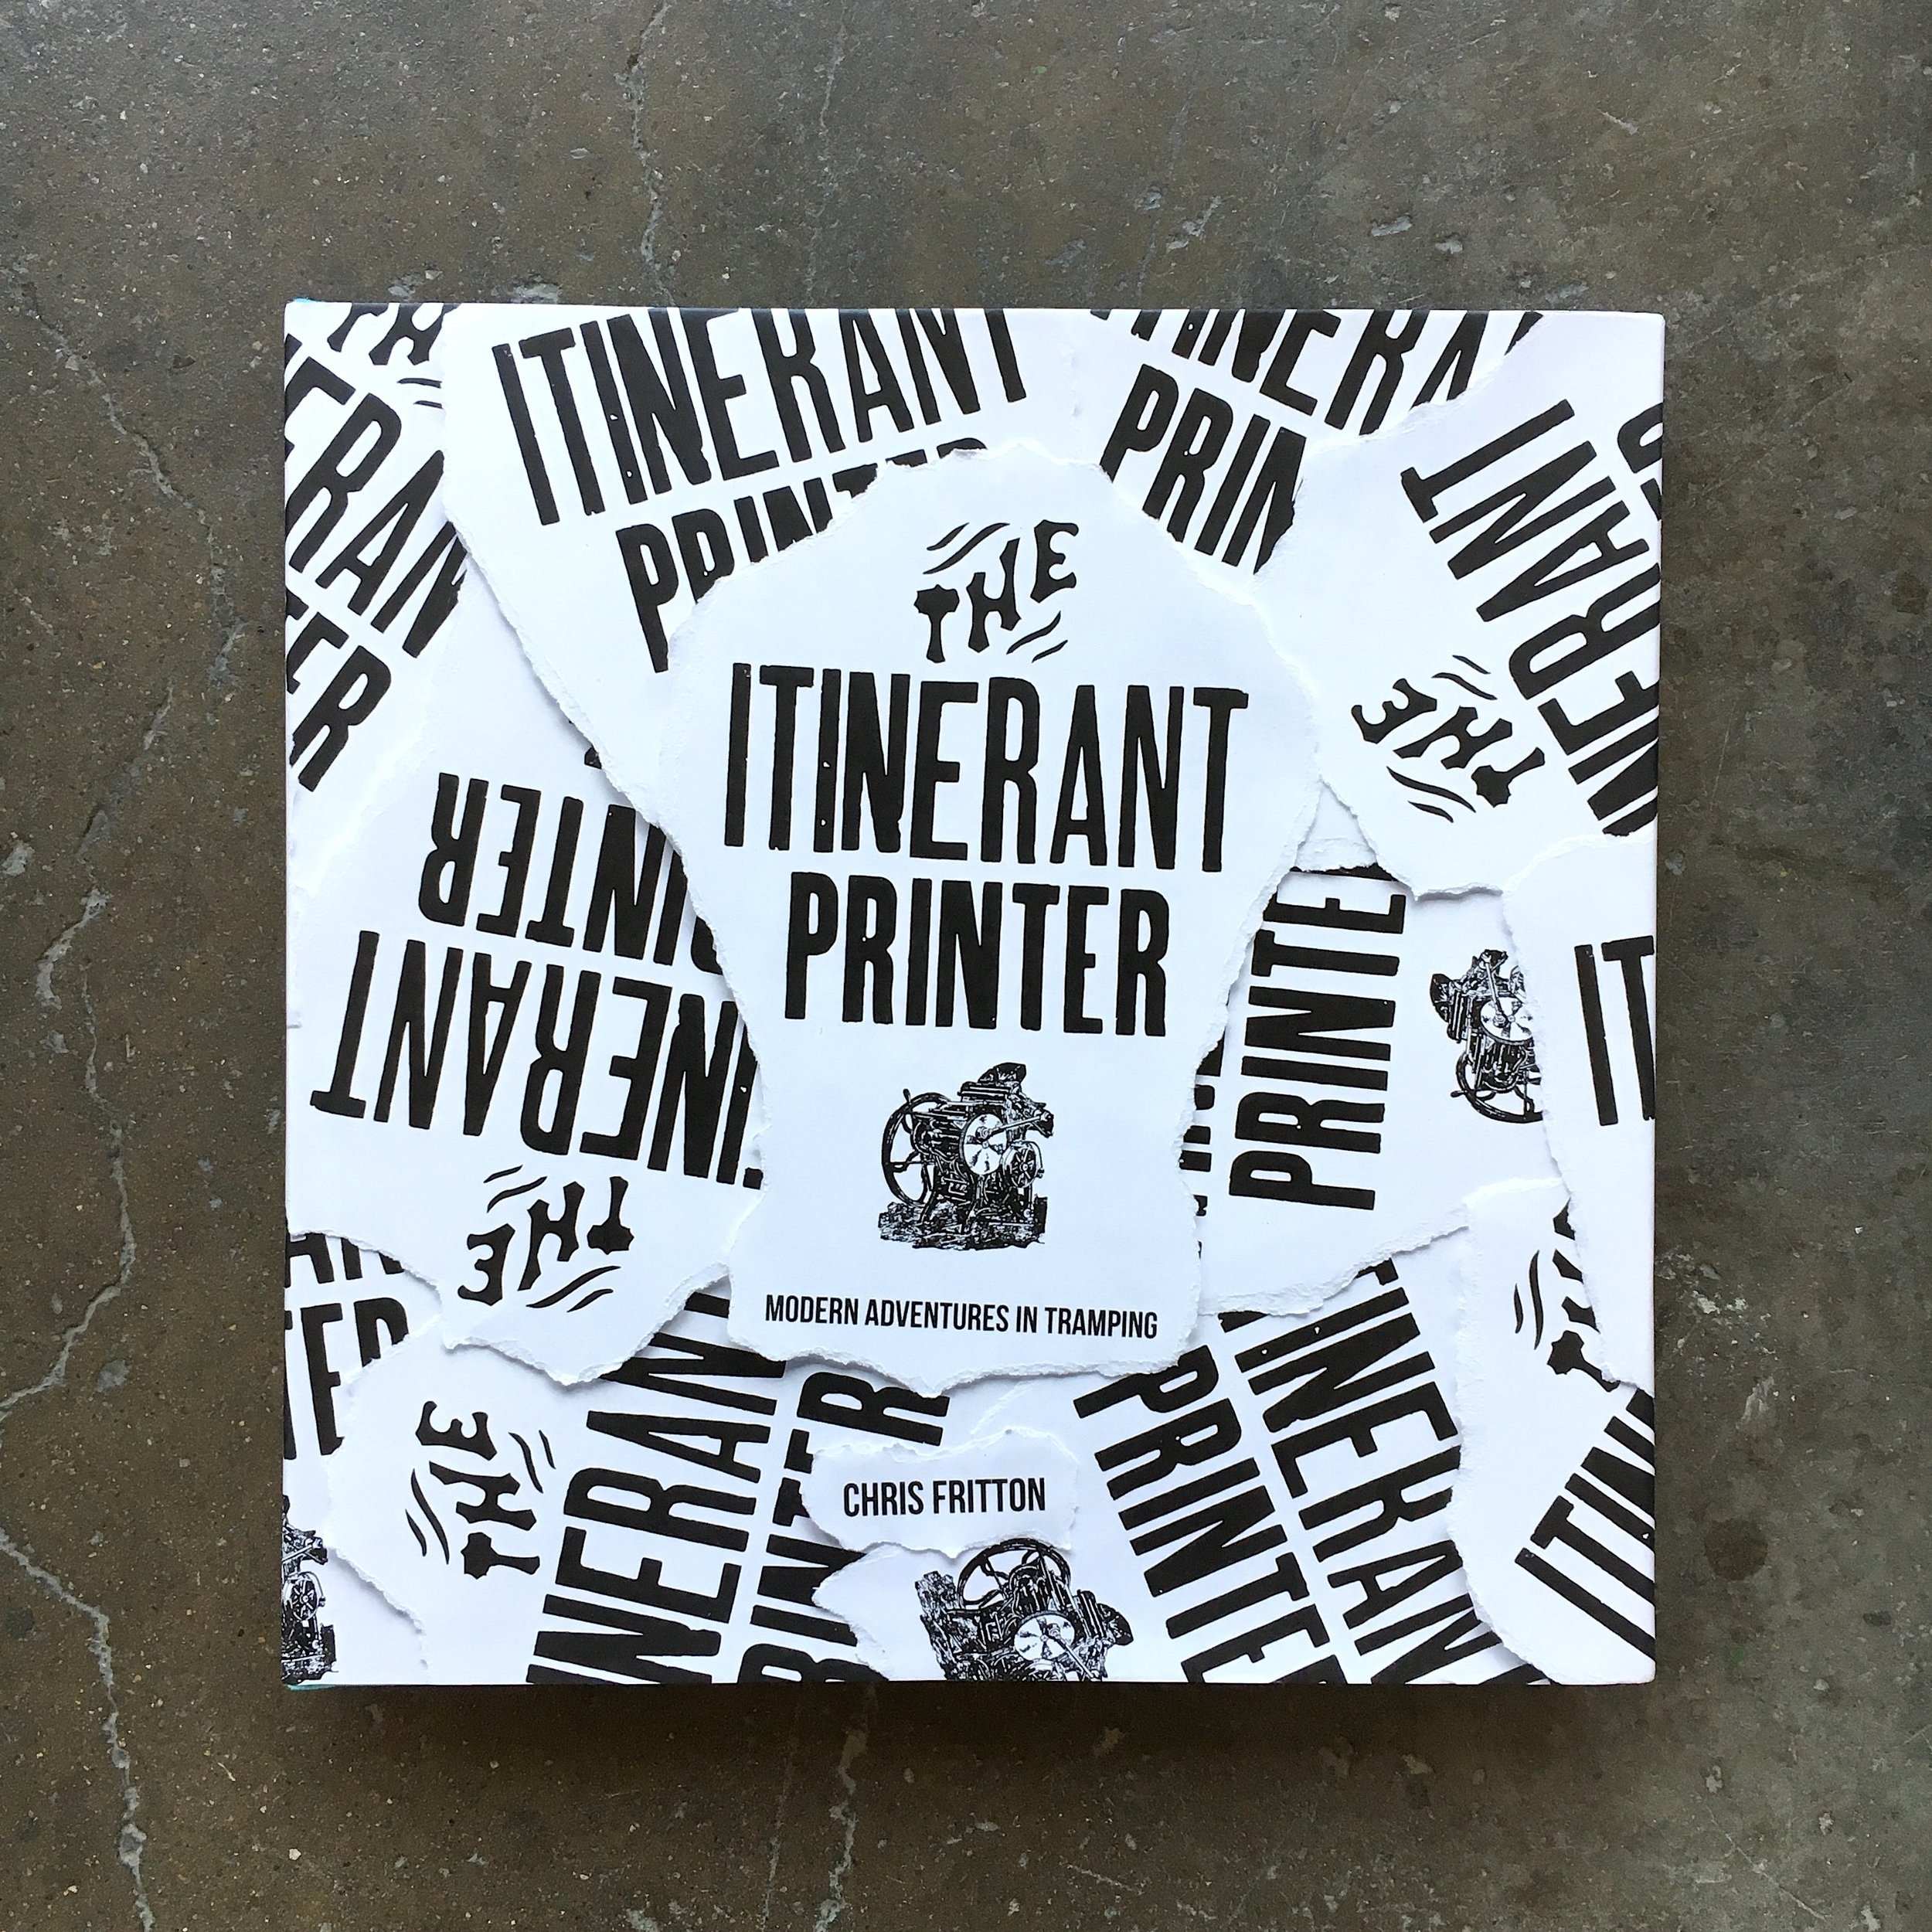 The Itinerant Printer Book // layout & design Image:  book jacket